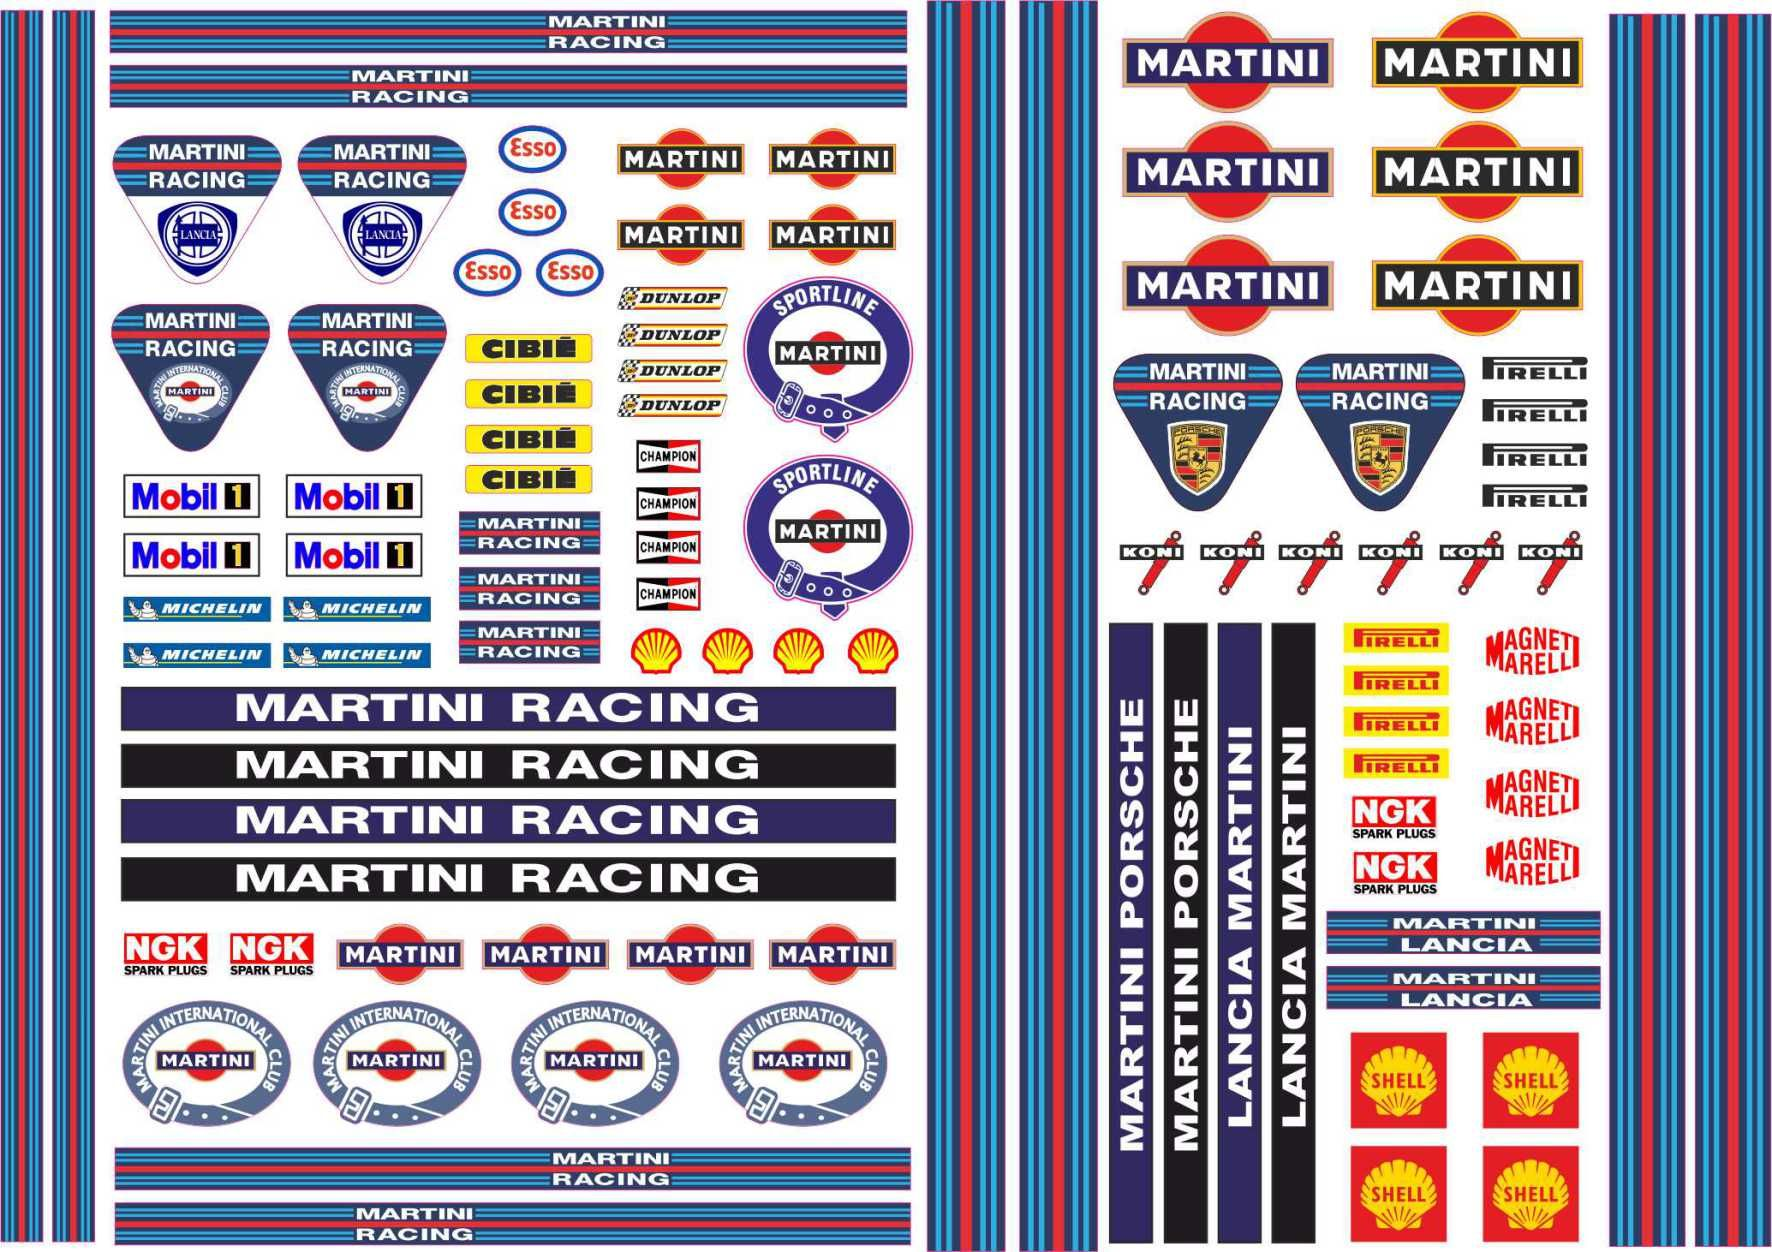 Martini Racing Stripe Google Search Martini Racing Stripes Martini Racing Martini